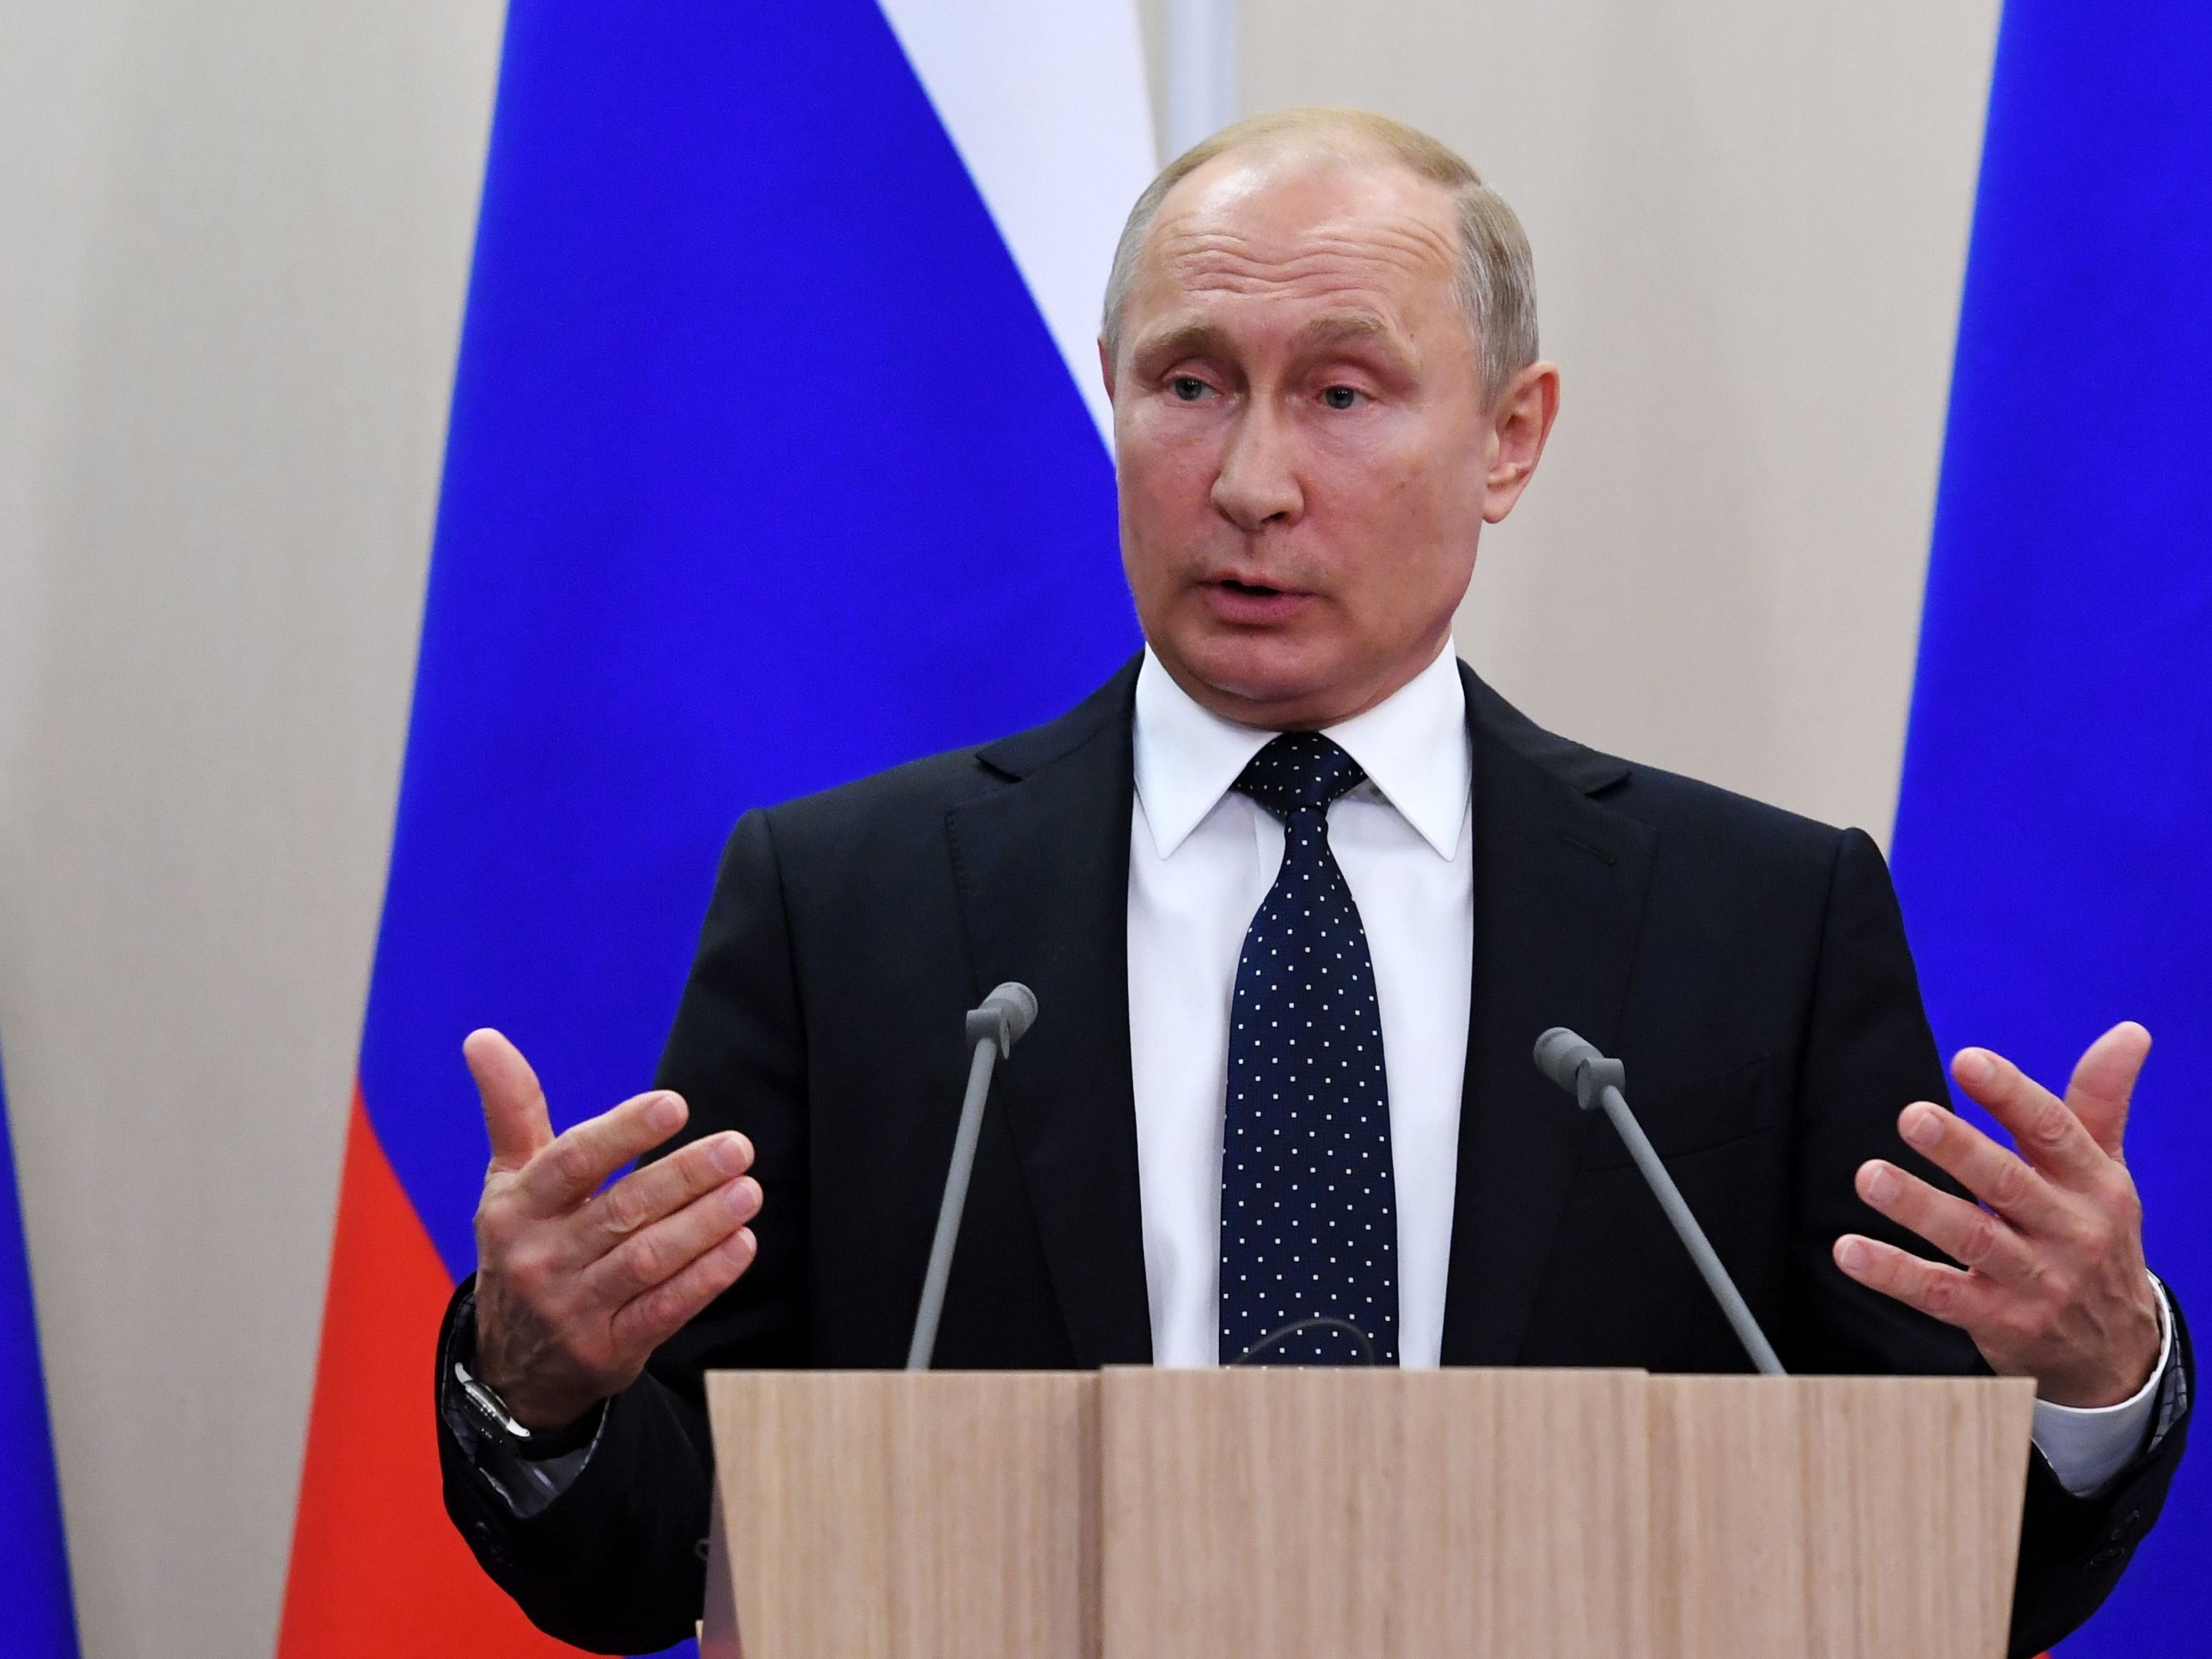 Lawmakers Propose To Extend Putin S Term Limits As President The Two Way Npr